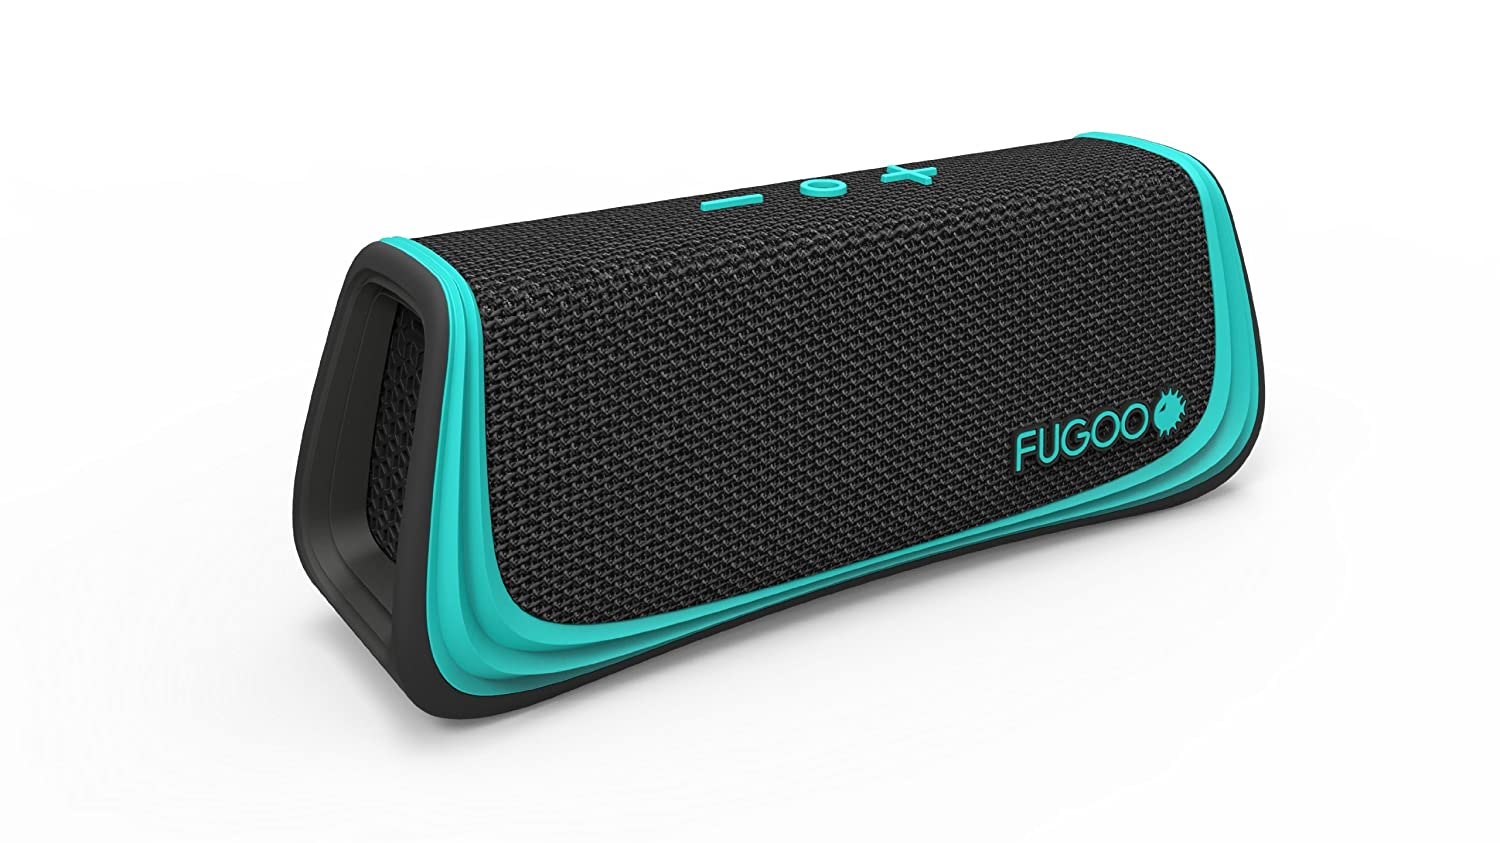 bose waterproof bluetooth speakers. amazon.com: fugoo sport - portable rugged bluetooth wireless speaker waterproof longest 40 hrs battery life (black/teal): amazon launchpad bose speakers u